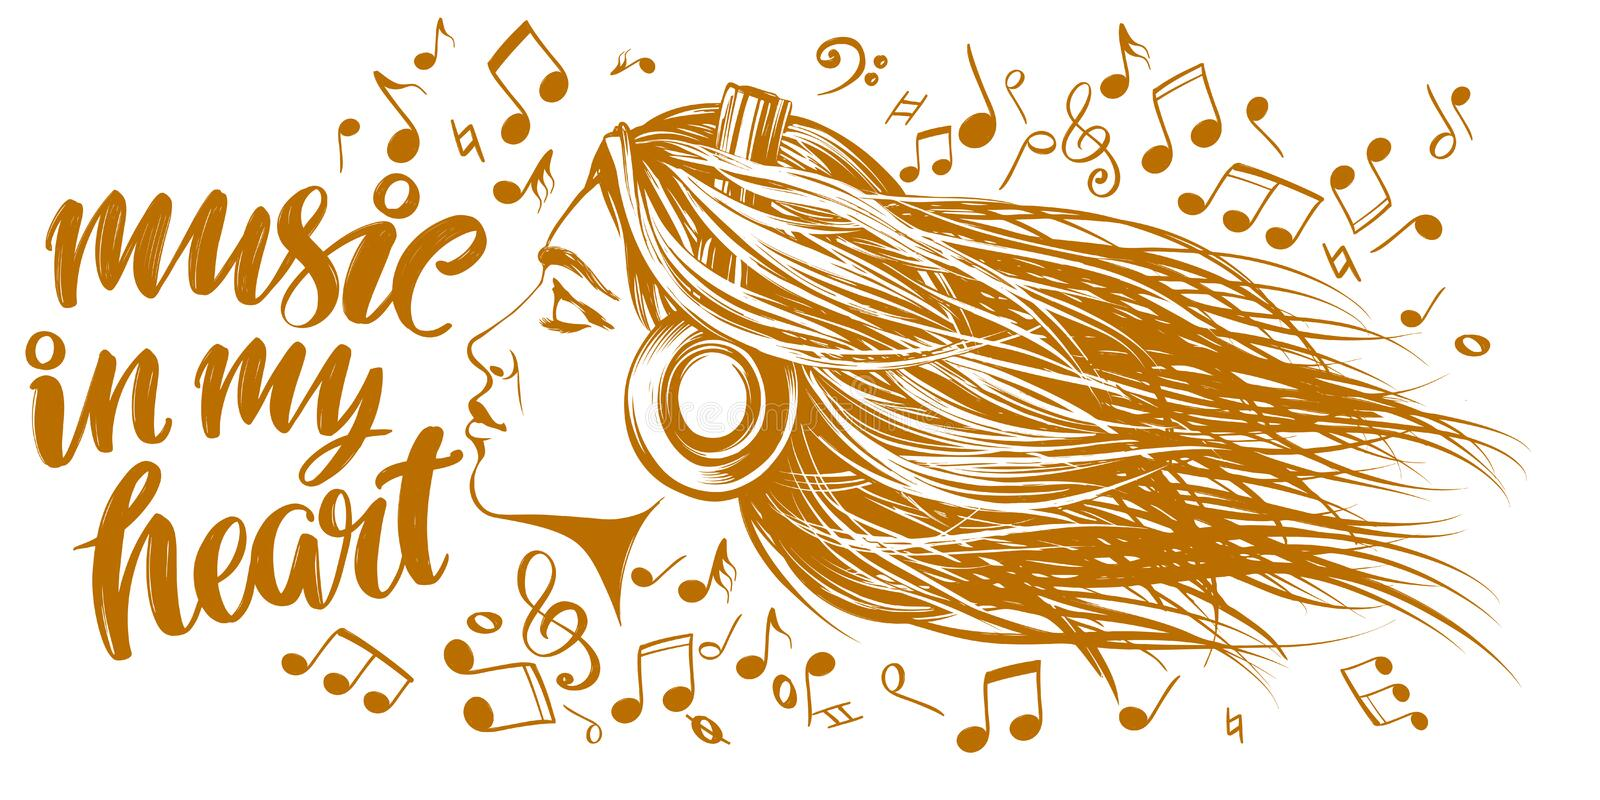 Beautiful young girl listening to music on headphones, musical notes love music, calligraphy text hand drawn vector royalty free illustration